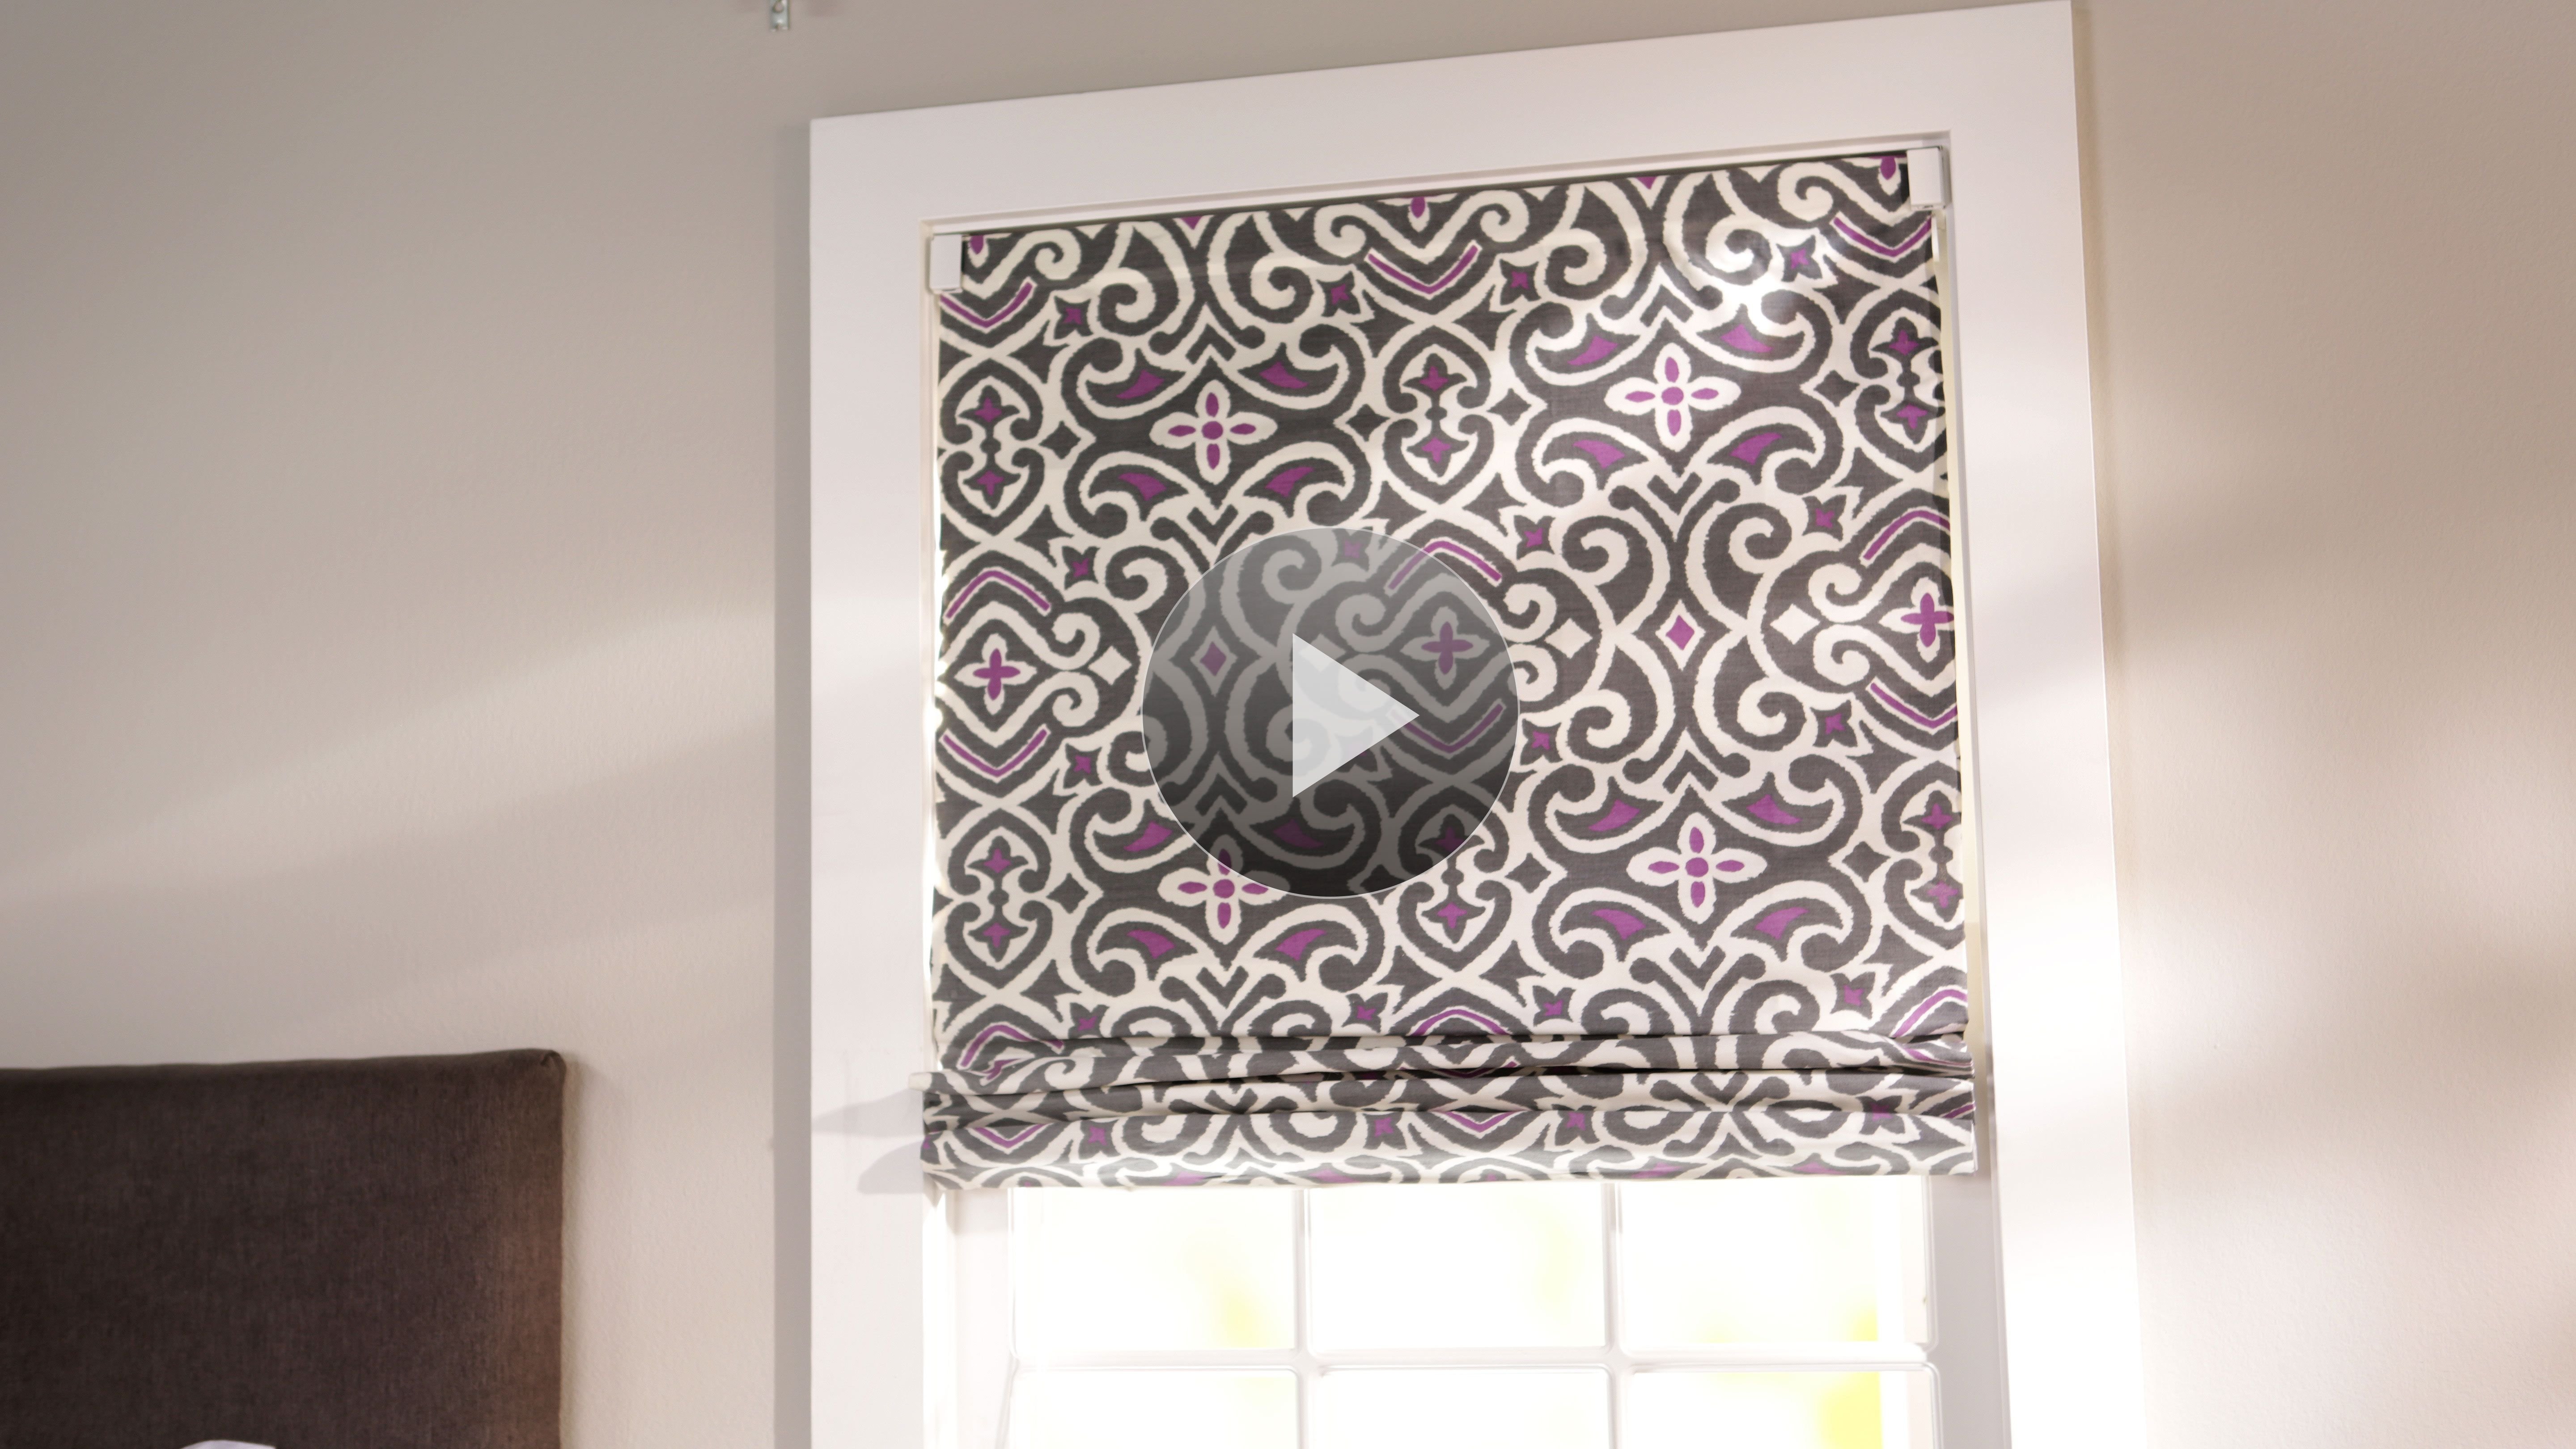 How To Make Roman Shades Diy Roman Shades Roman Shades